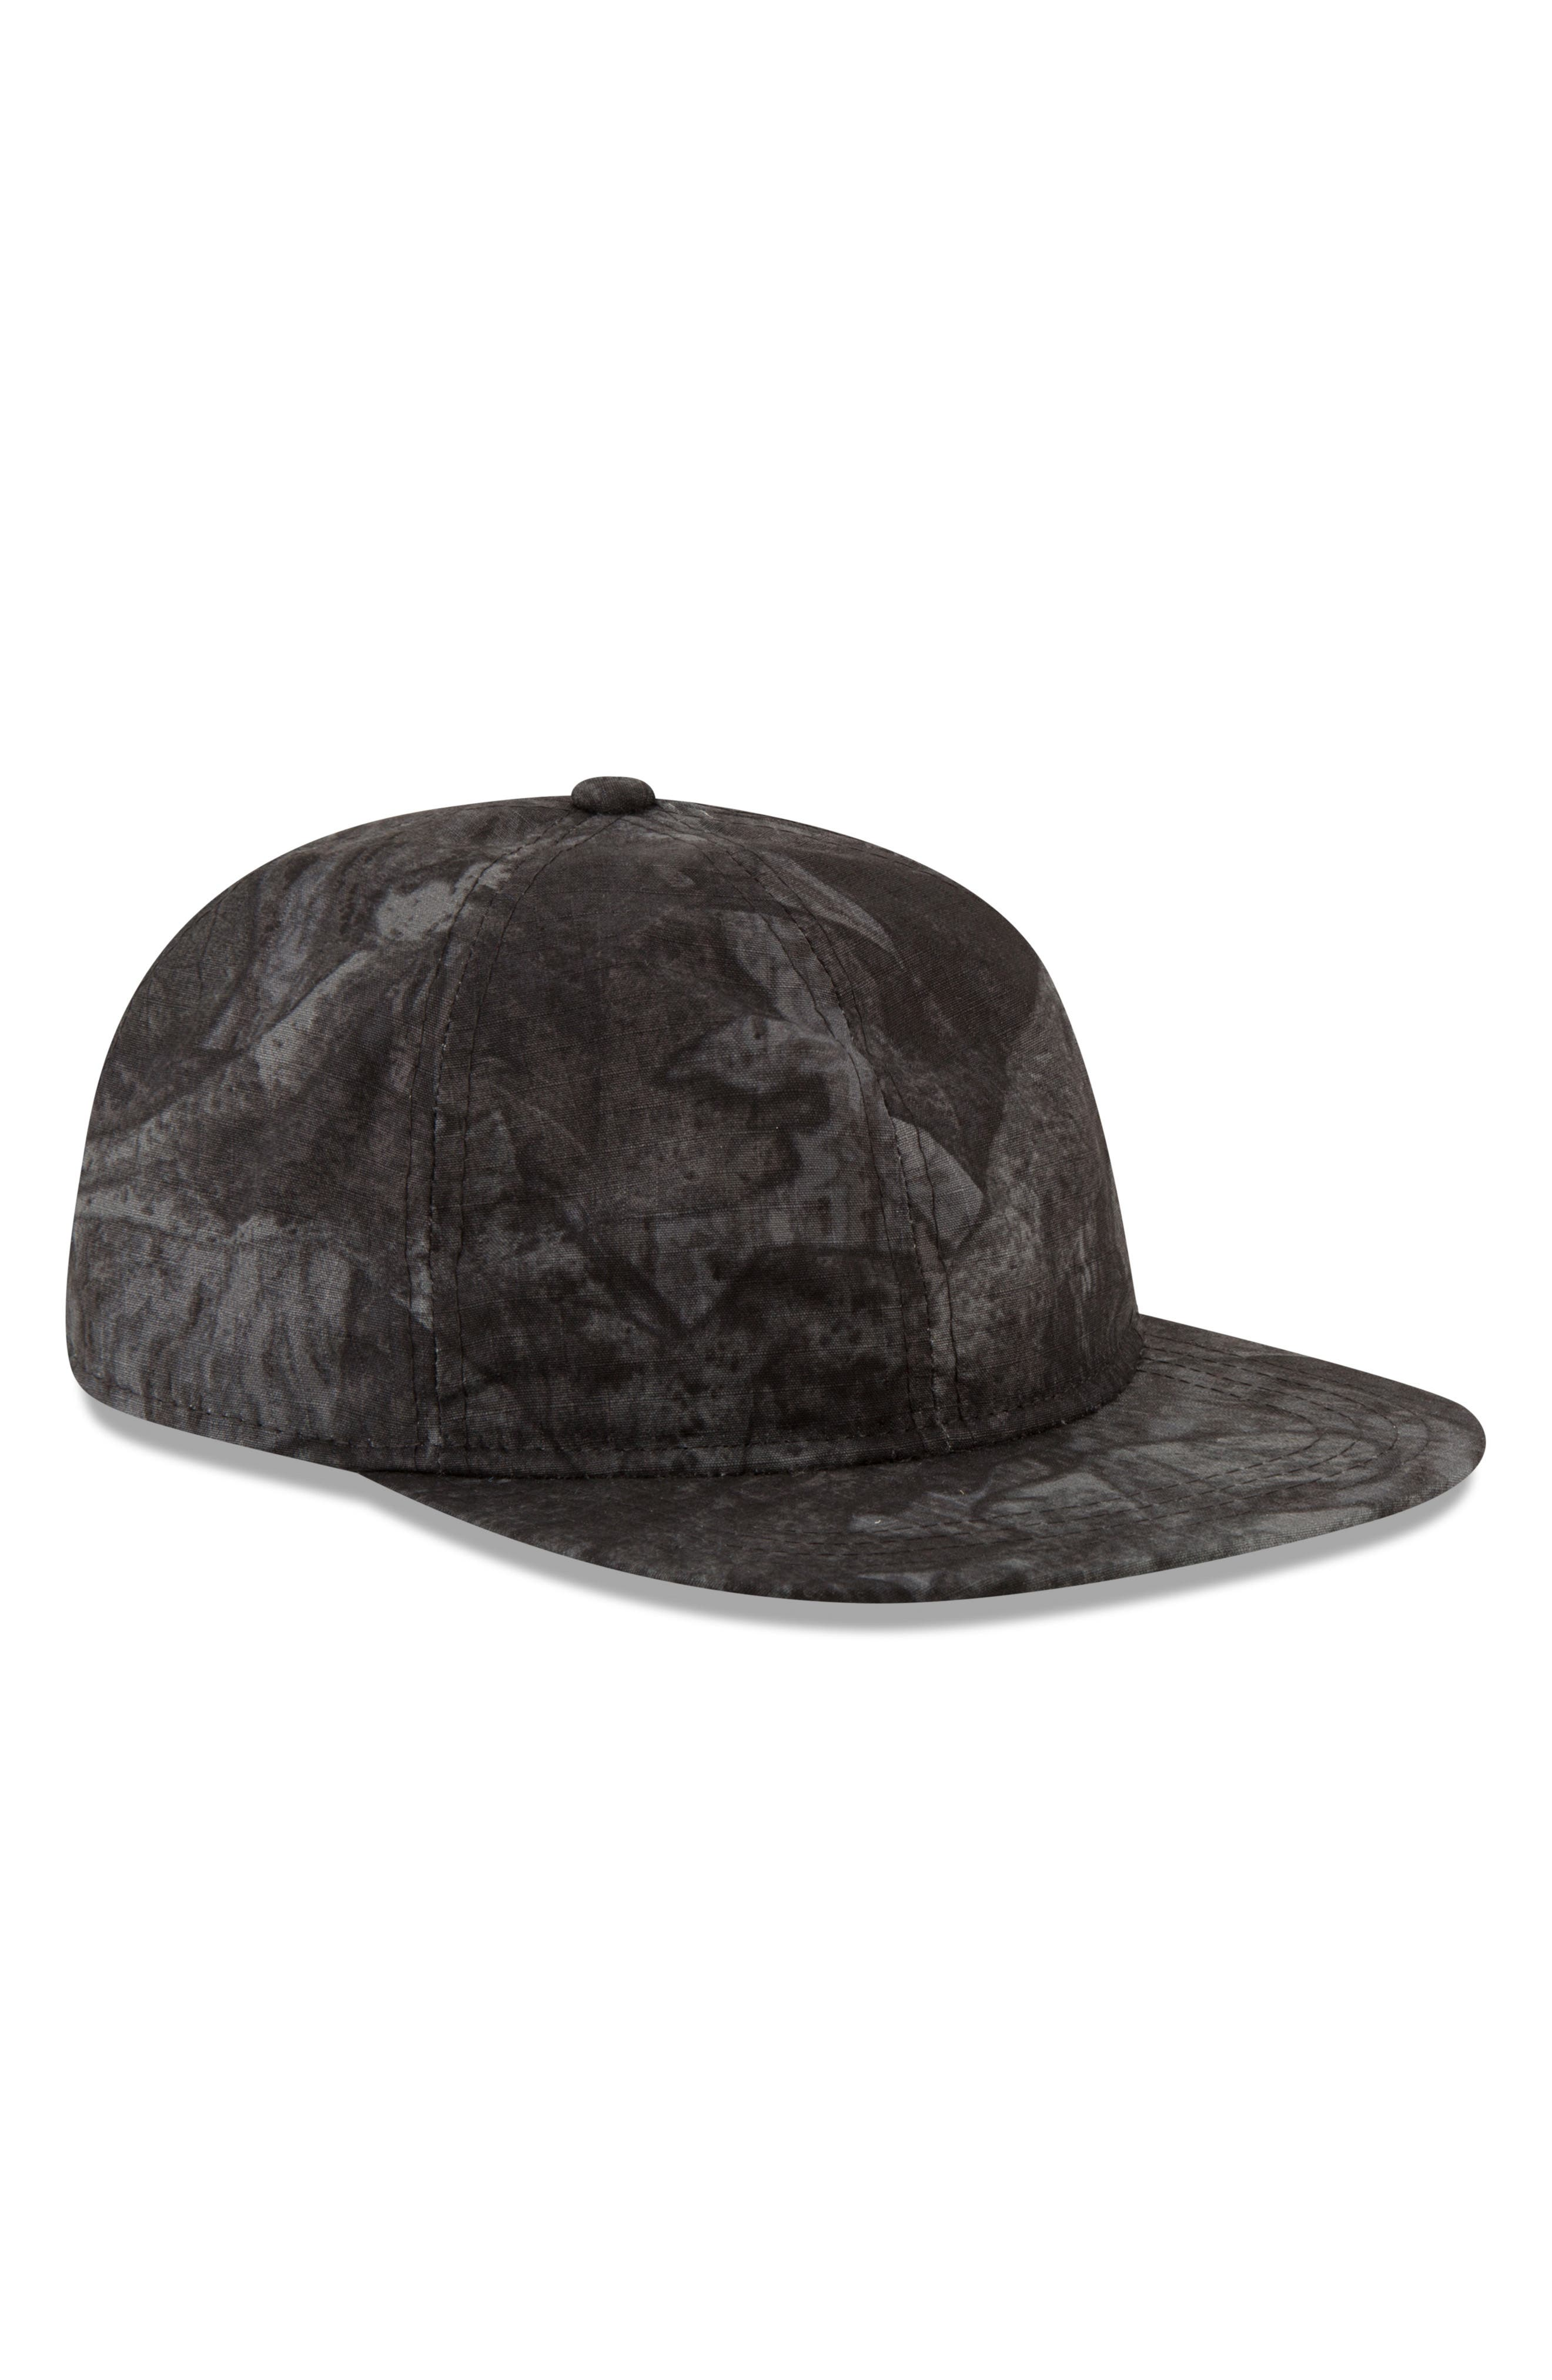 9Twenty Tonal Camo Flat Brim Hat,                             Alternate thumbnail 6, color,                             BLACK